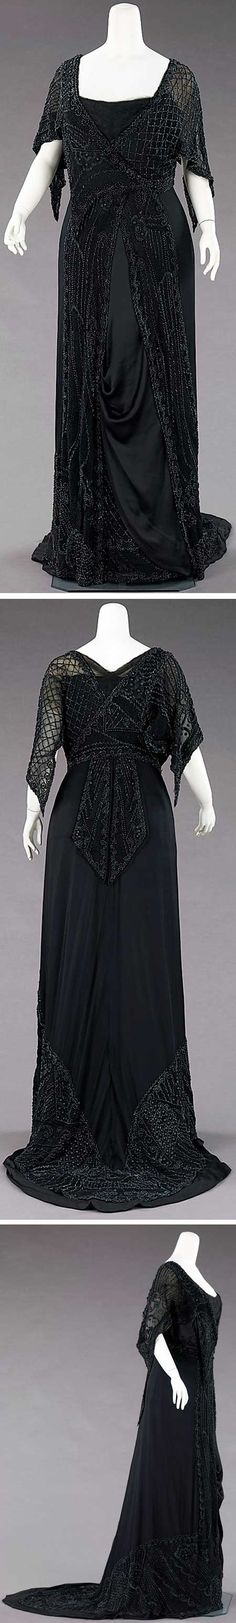 """Mourning  evening dress, Charlotte Duclos, Paris, ca. 1910. Silk and jet. Metropolitan Museum of Art: """"The elaborate but subtle beading on this mourning dress would have shimmered when new. The asymmetry of the charmeuse panel is indicative of the high fashion of the period. An example of extremely chic mourning attire for the evening, it features an element of subtle exposure: the beaded underpanel hidden by the charmeuse would have been revealed with the movement of the wearer."""""""